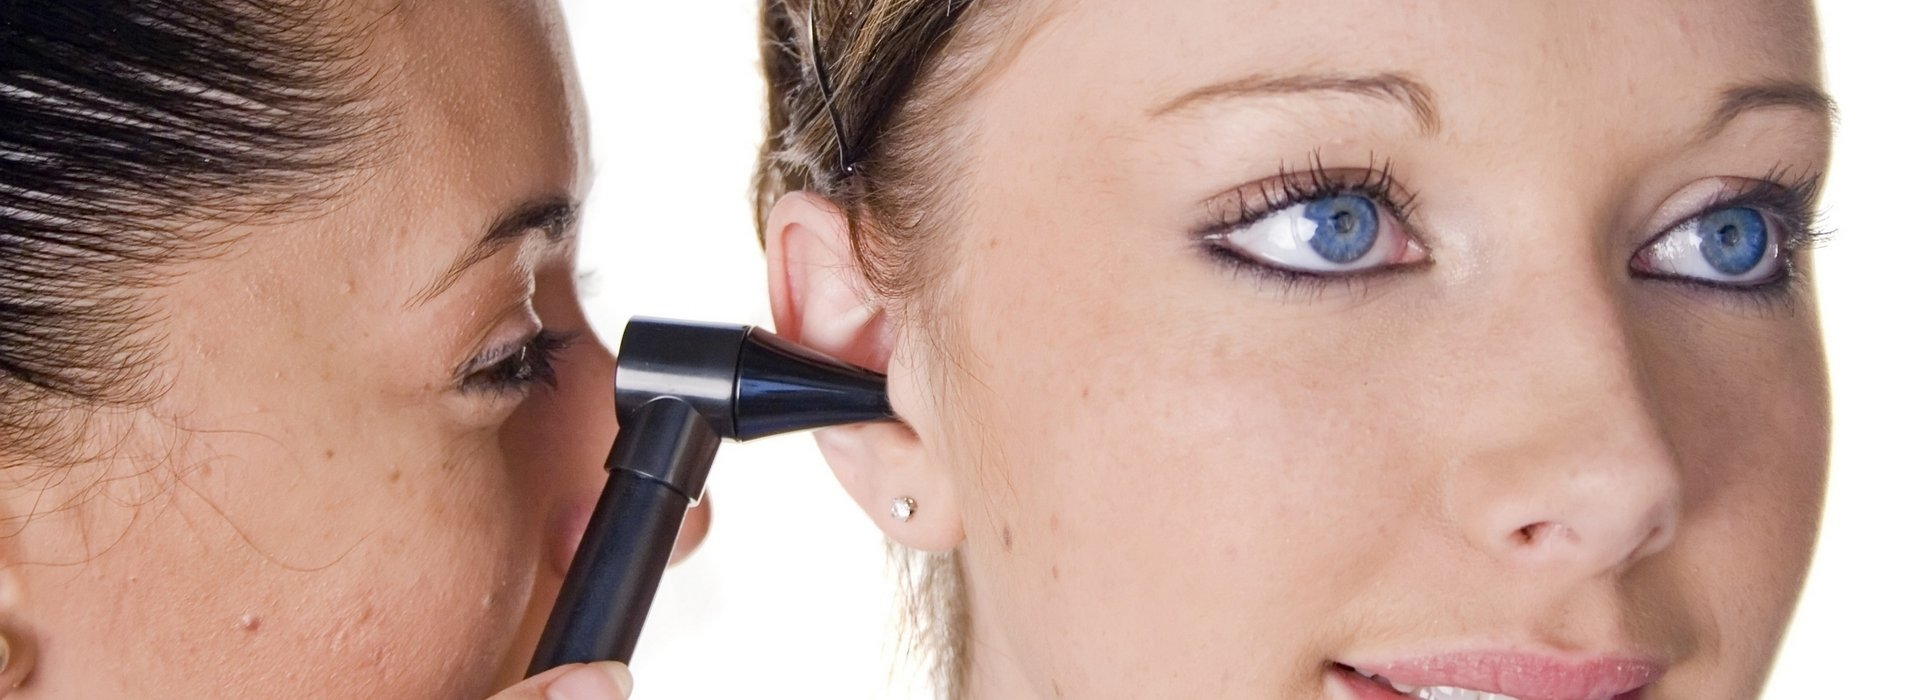 Ear surgery in Budapest – Budapest ear plastic surgery